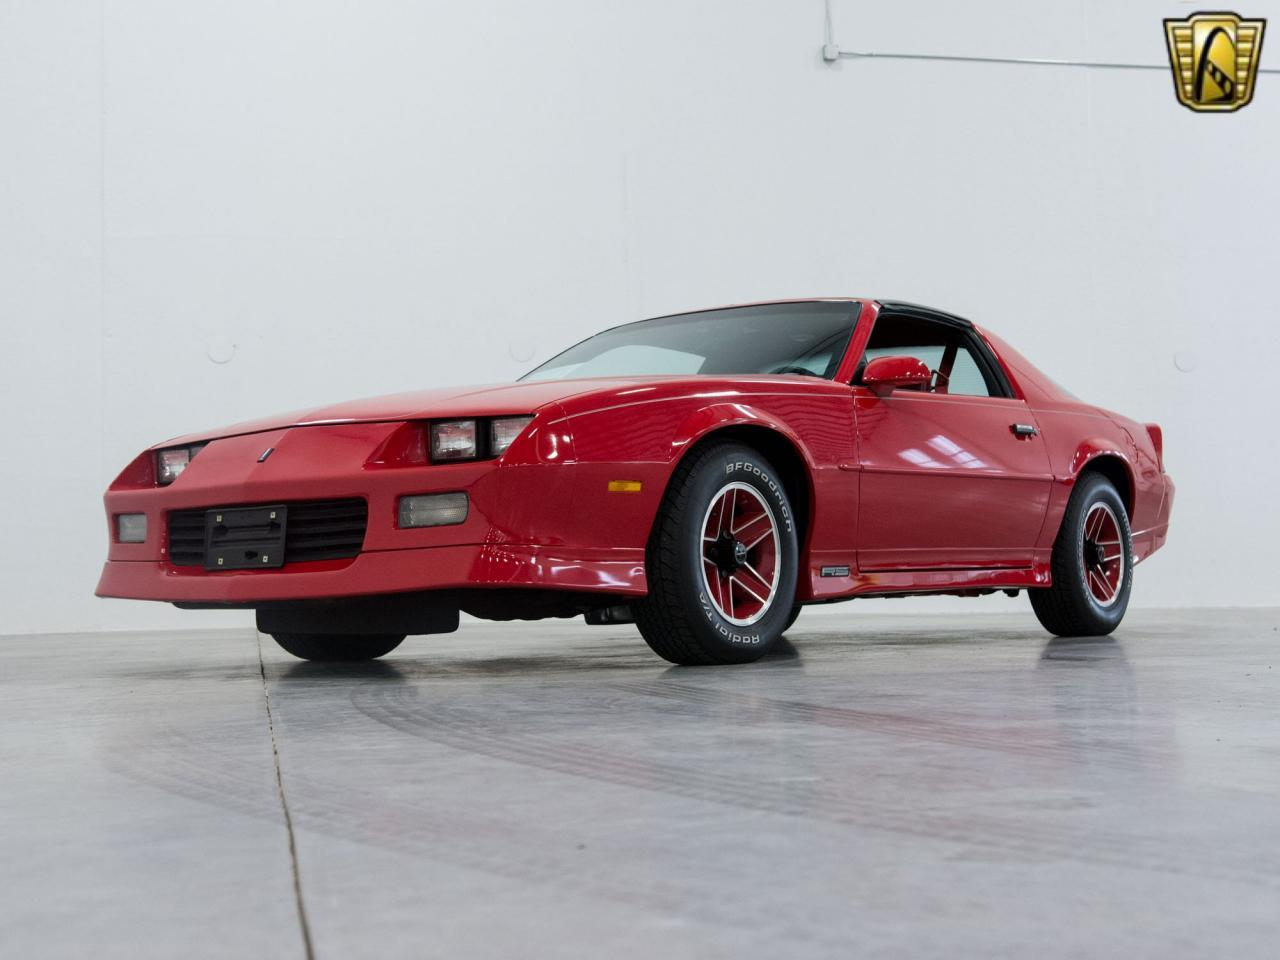 Large Picture of 1989 Chevrolet Camaro located in Kenosha Wisconsin - $17,995.00 Offered by Gateway Classic Cars - Milwaukee - KE4I